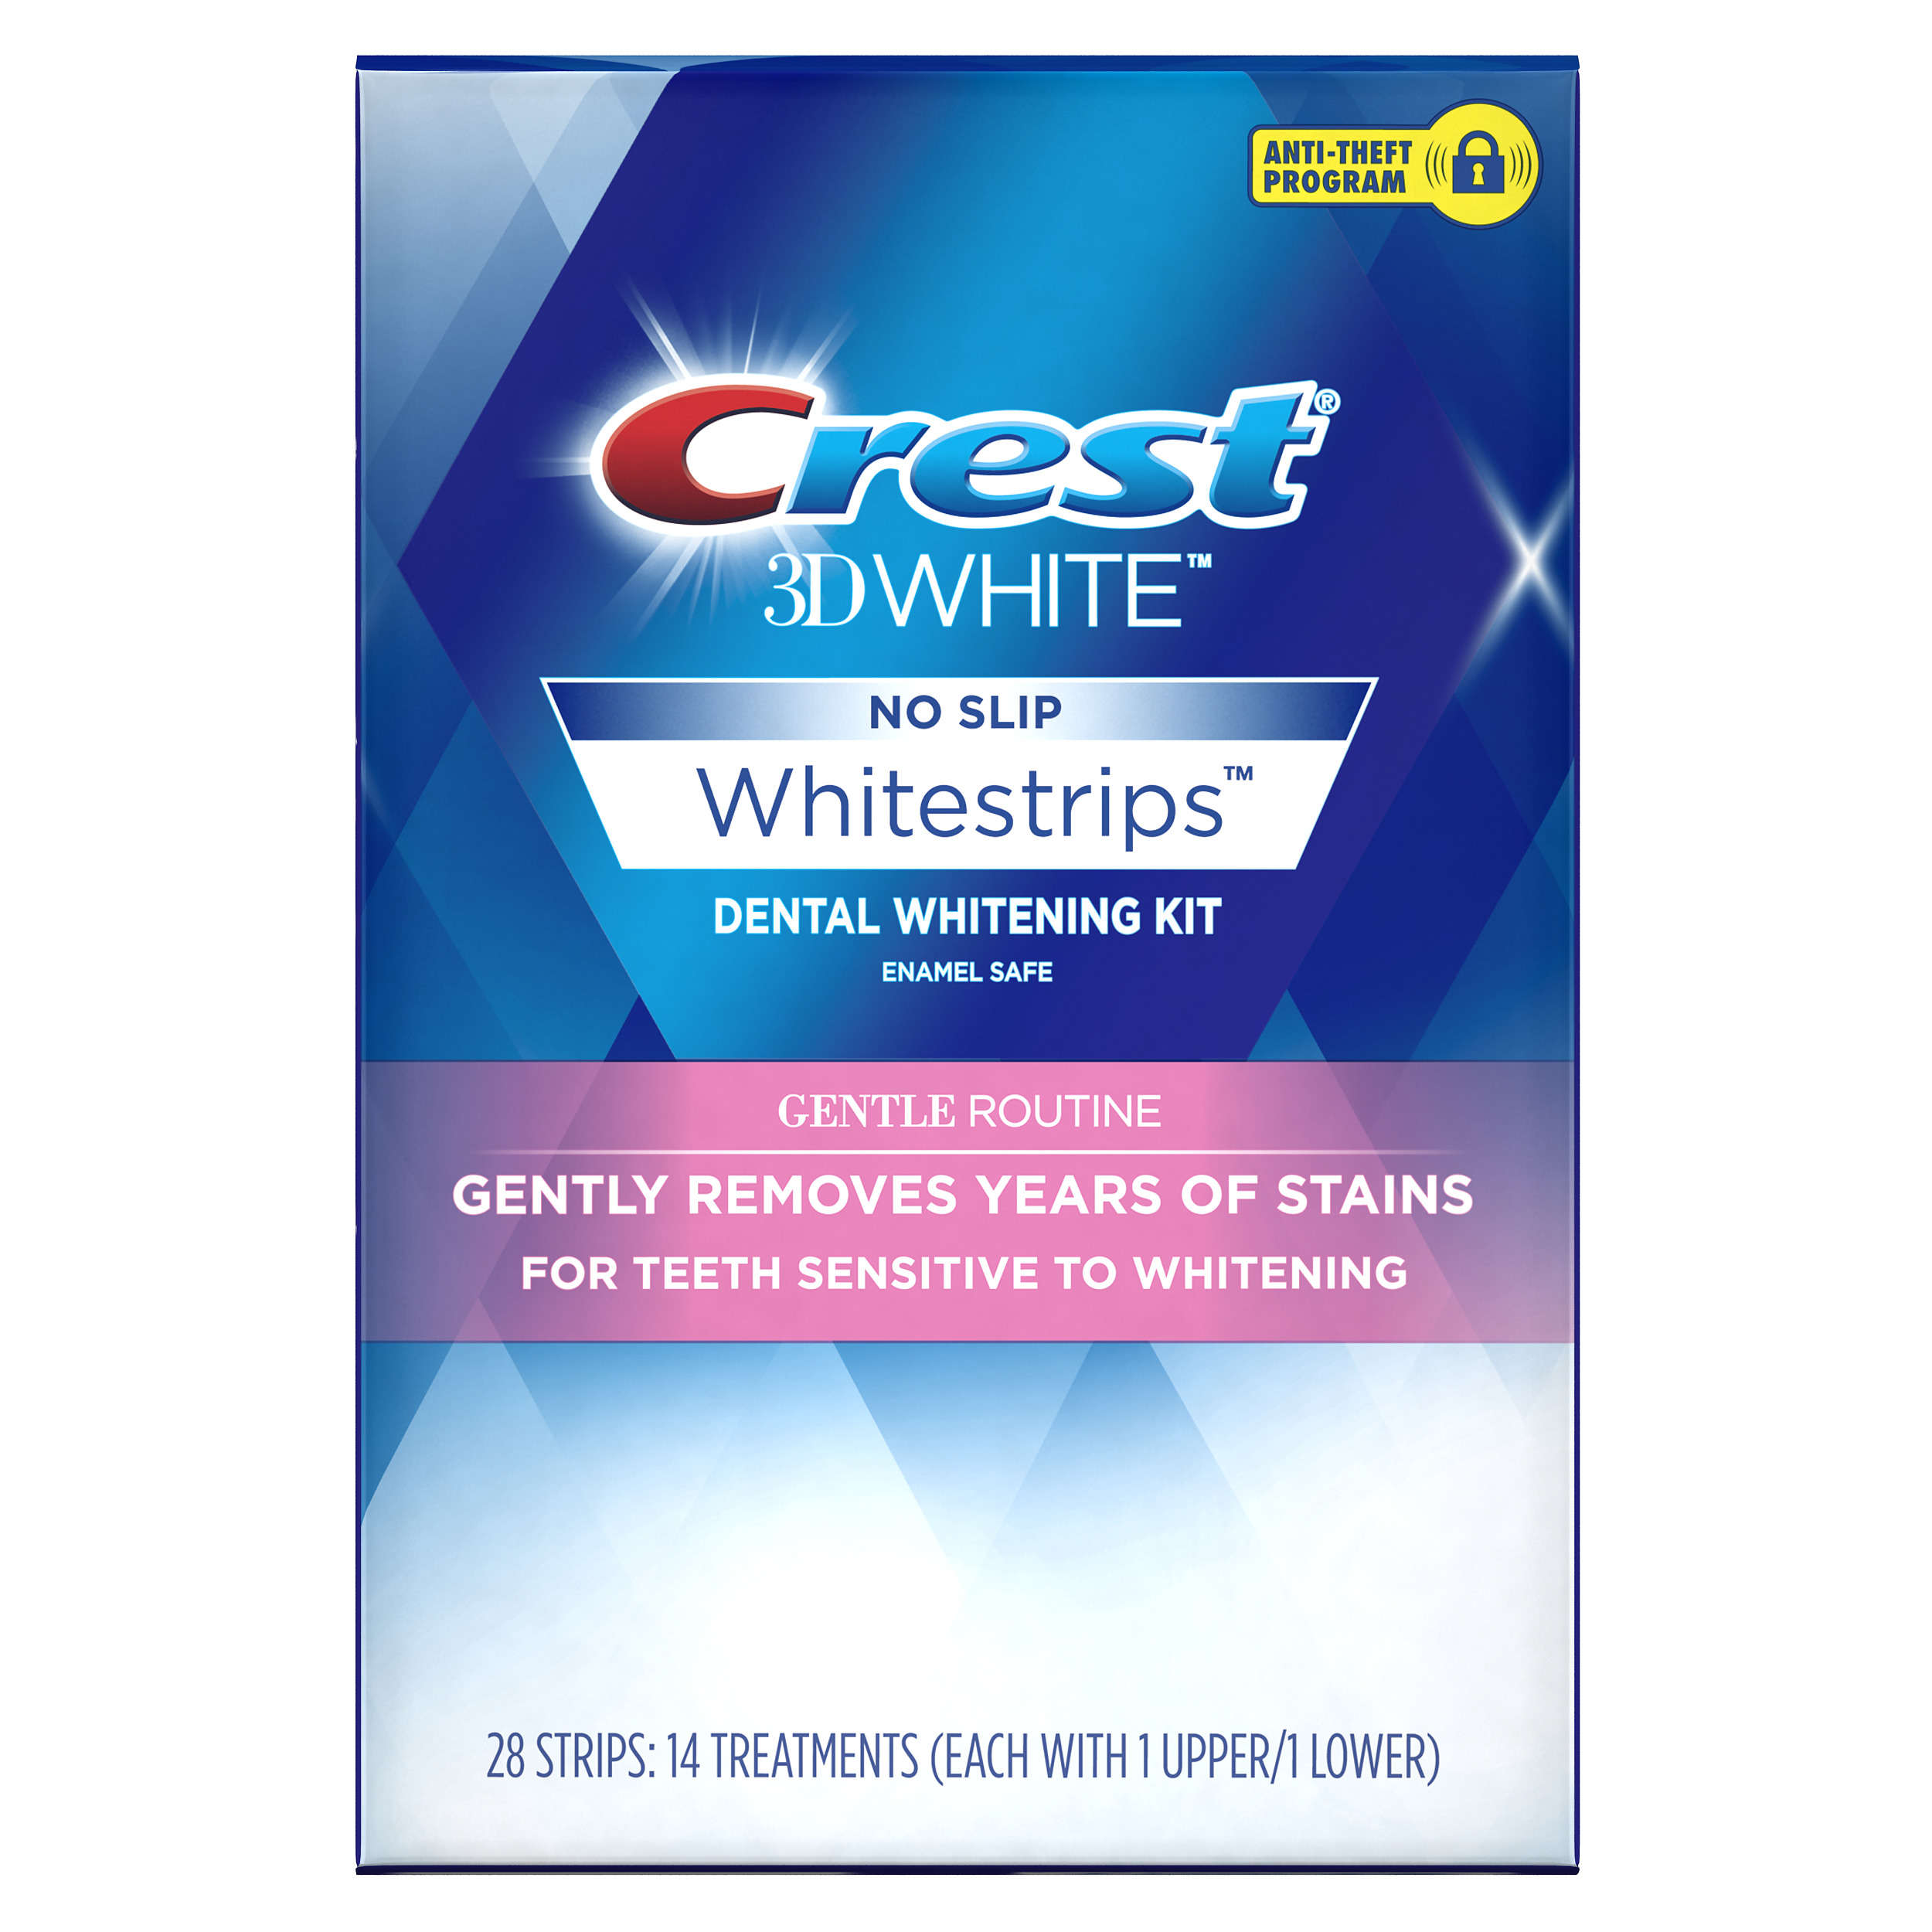 Crest 3D White Whitestrips ($5 Rebate Available) Gentle Routine Teeth Whitening Kit, 14 Treatments